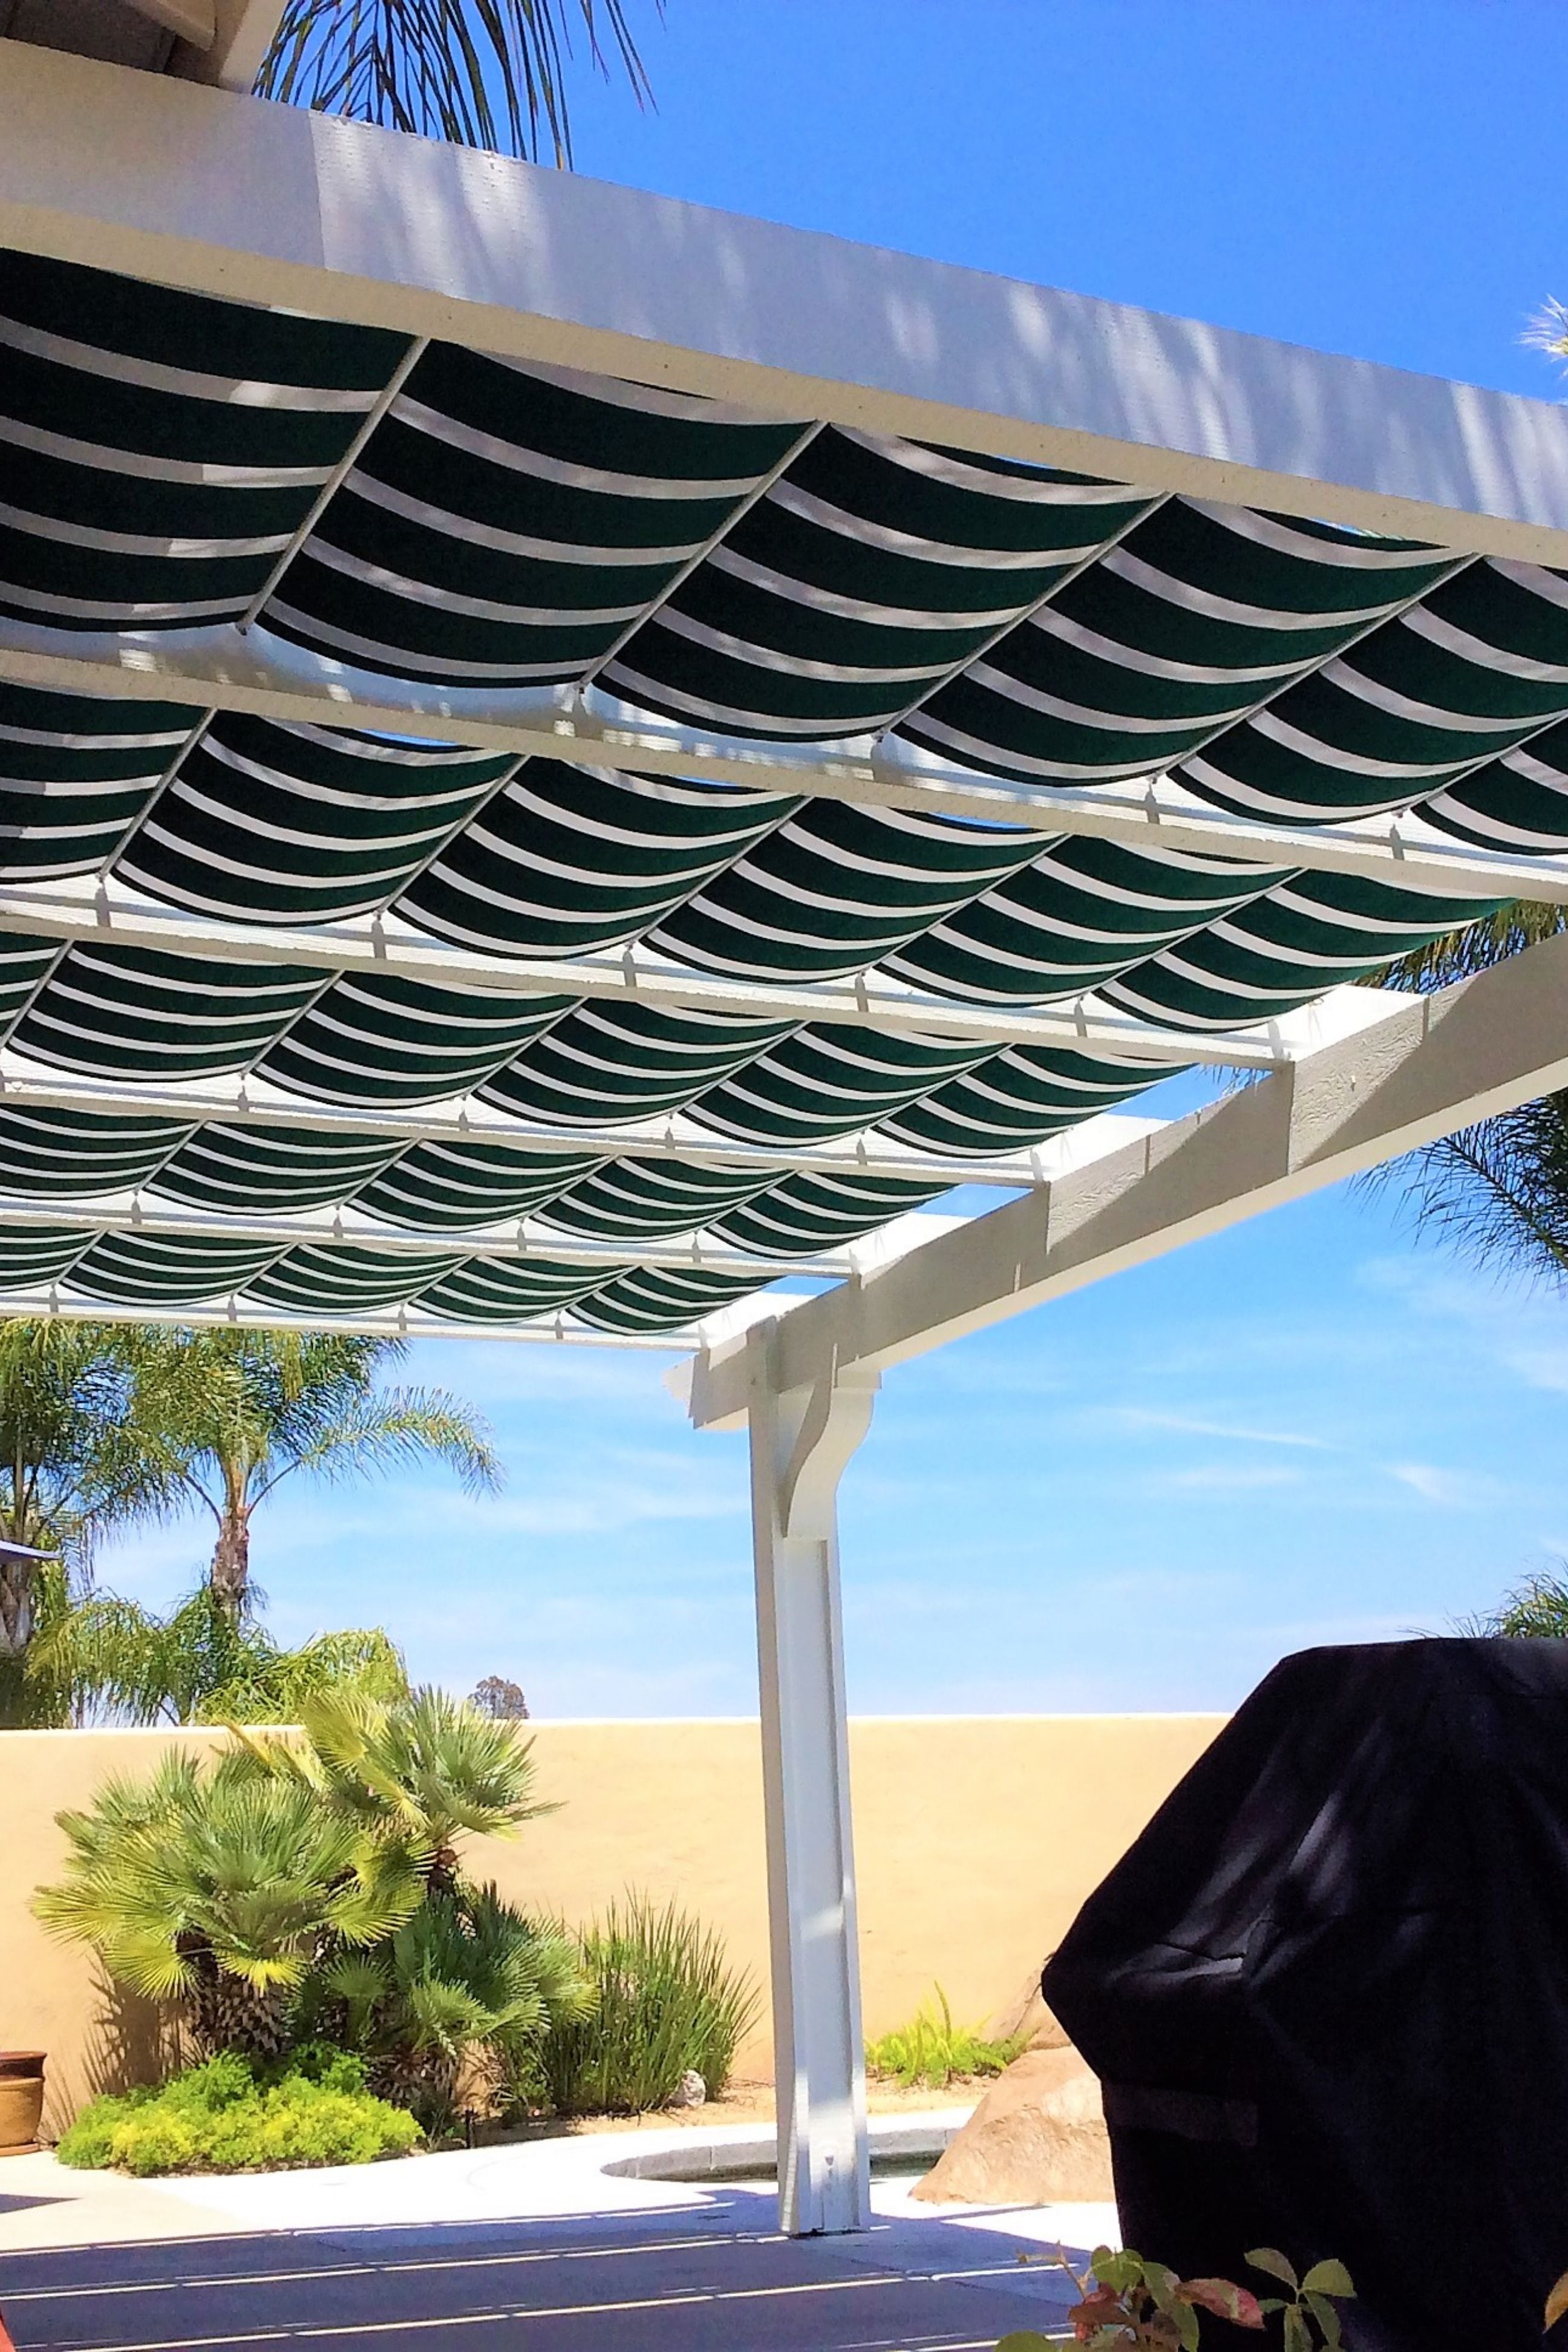 pergola shade canopy on attached pergola with striped fabric retractable canopies in murrieta ca pergola shade cover pergola patio shade pergola shade cover pergola patio shade